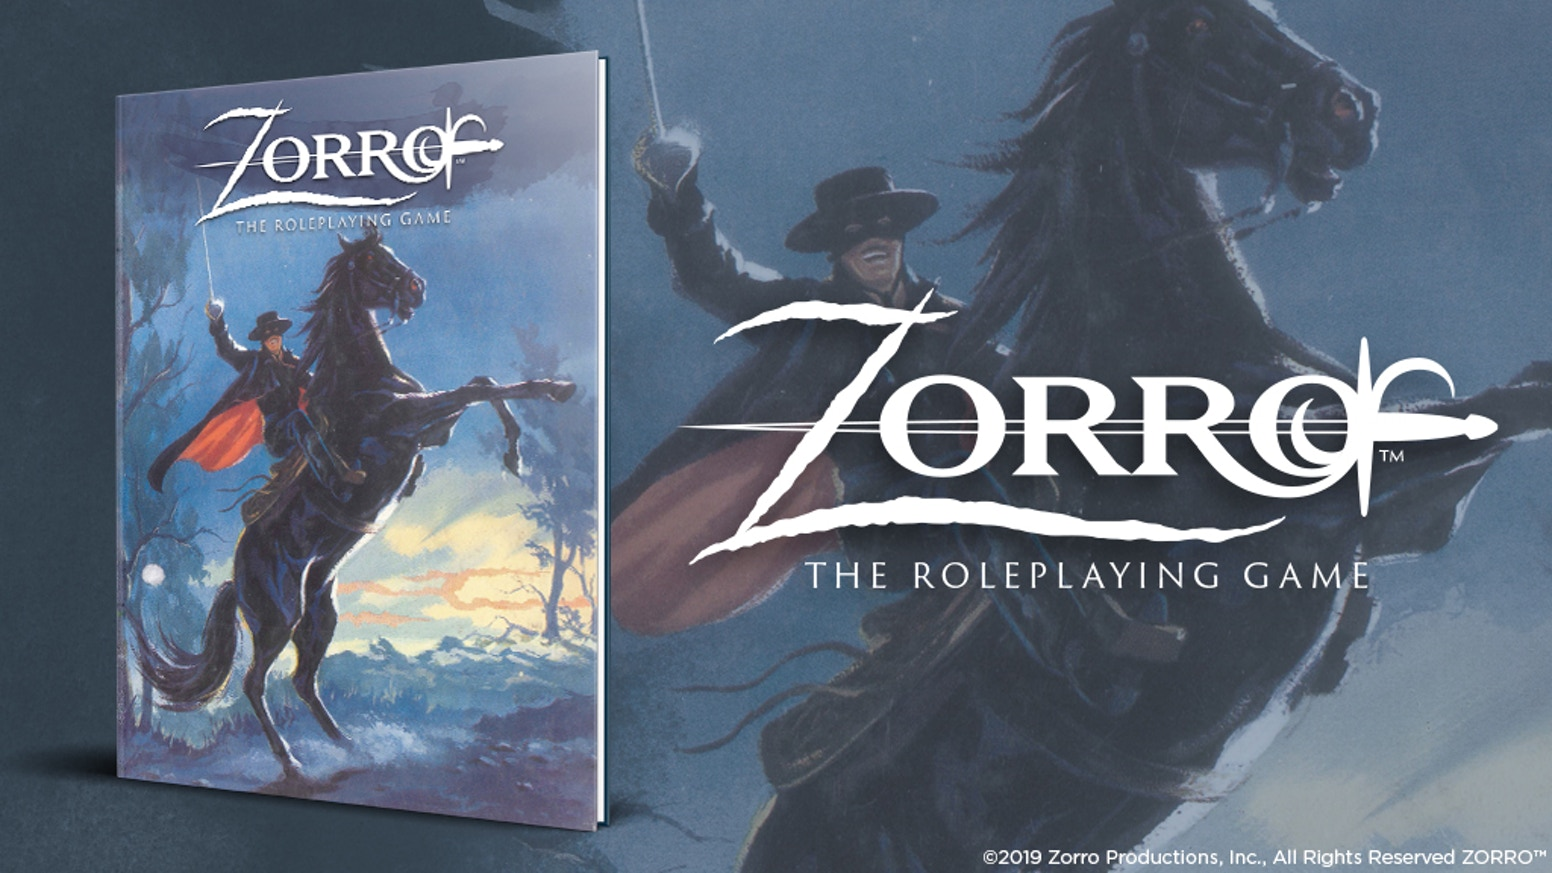 Zorro: The Roleplaying Game Kickstarter